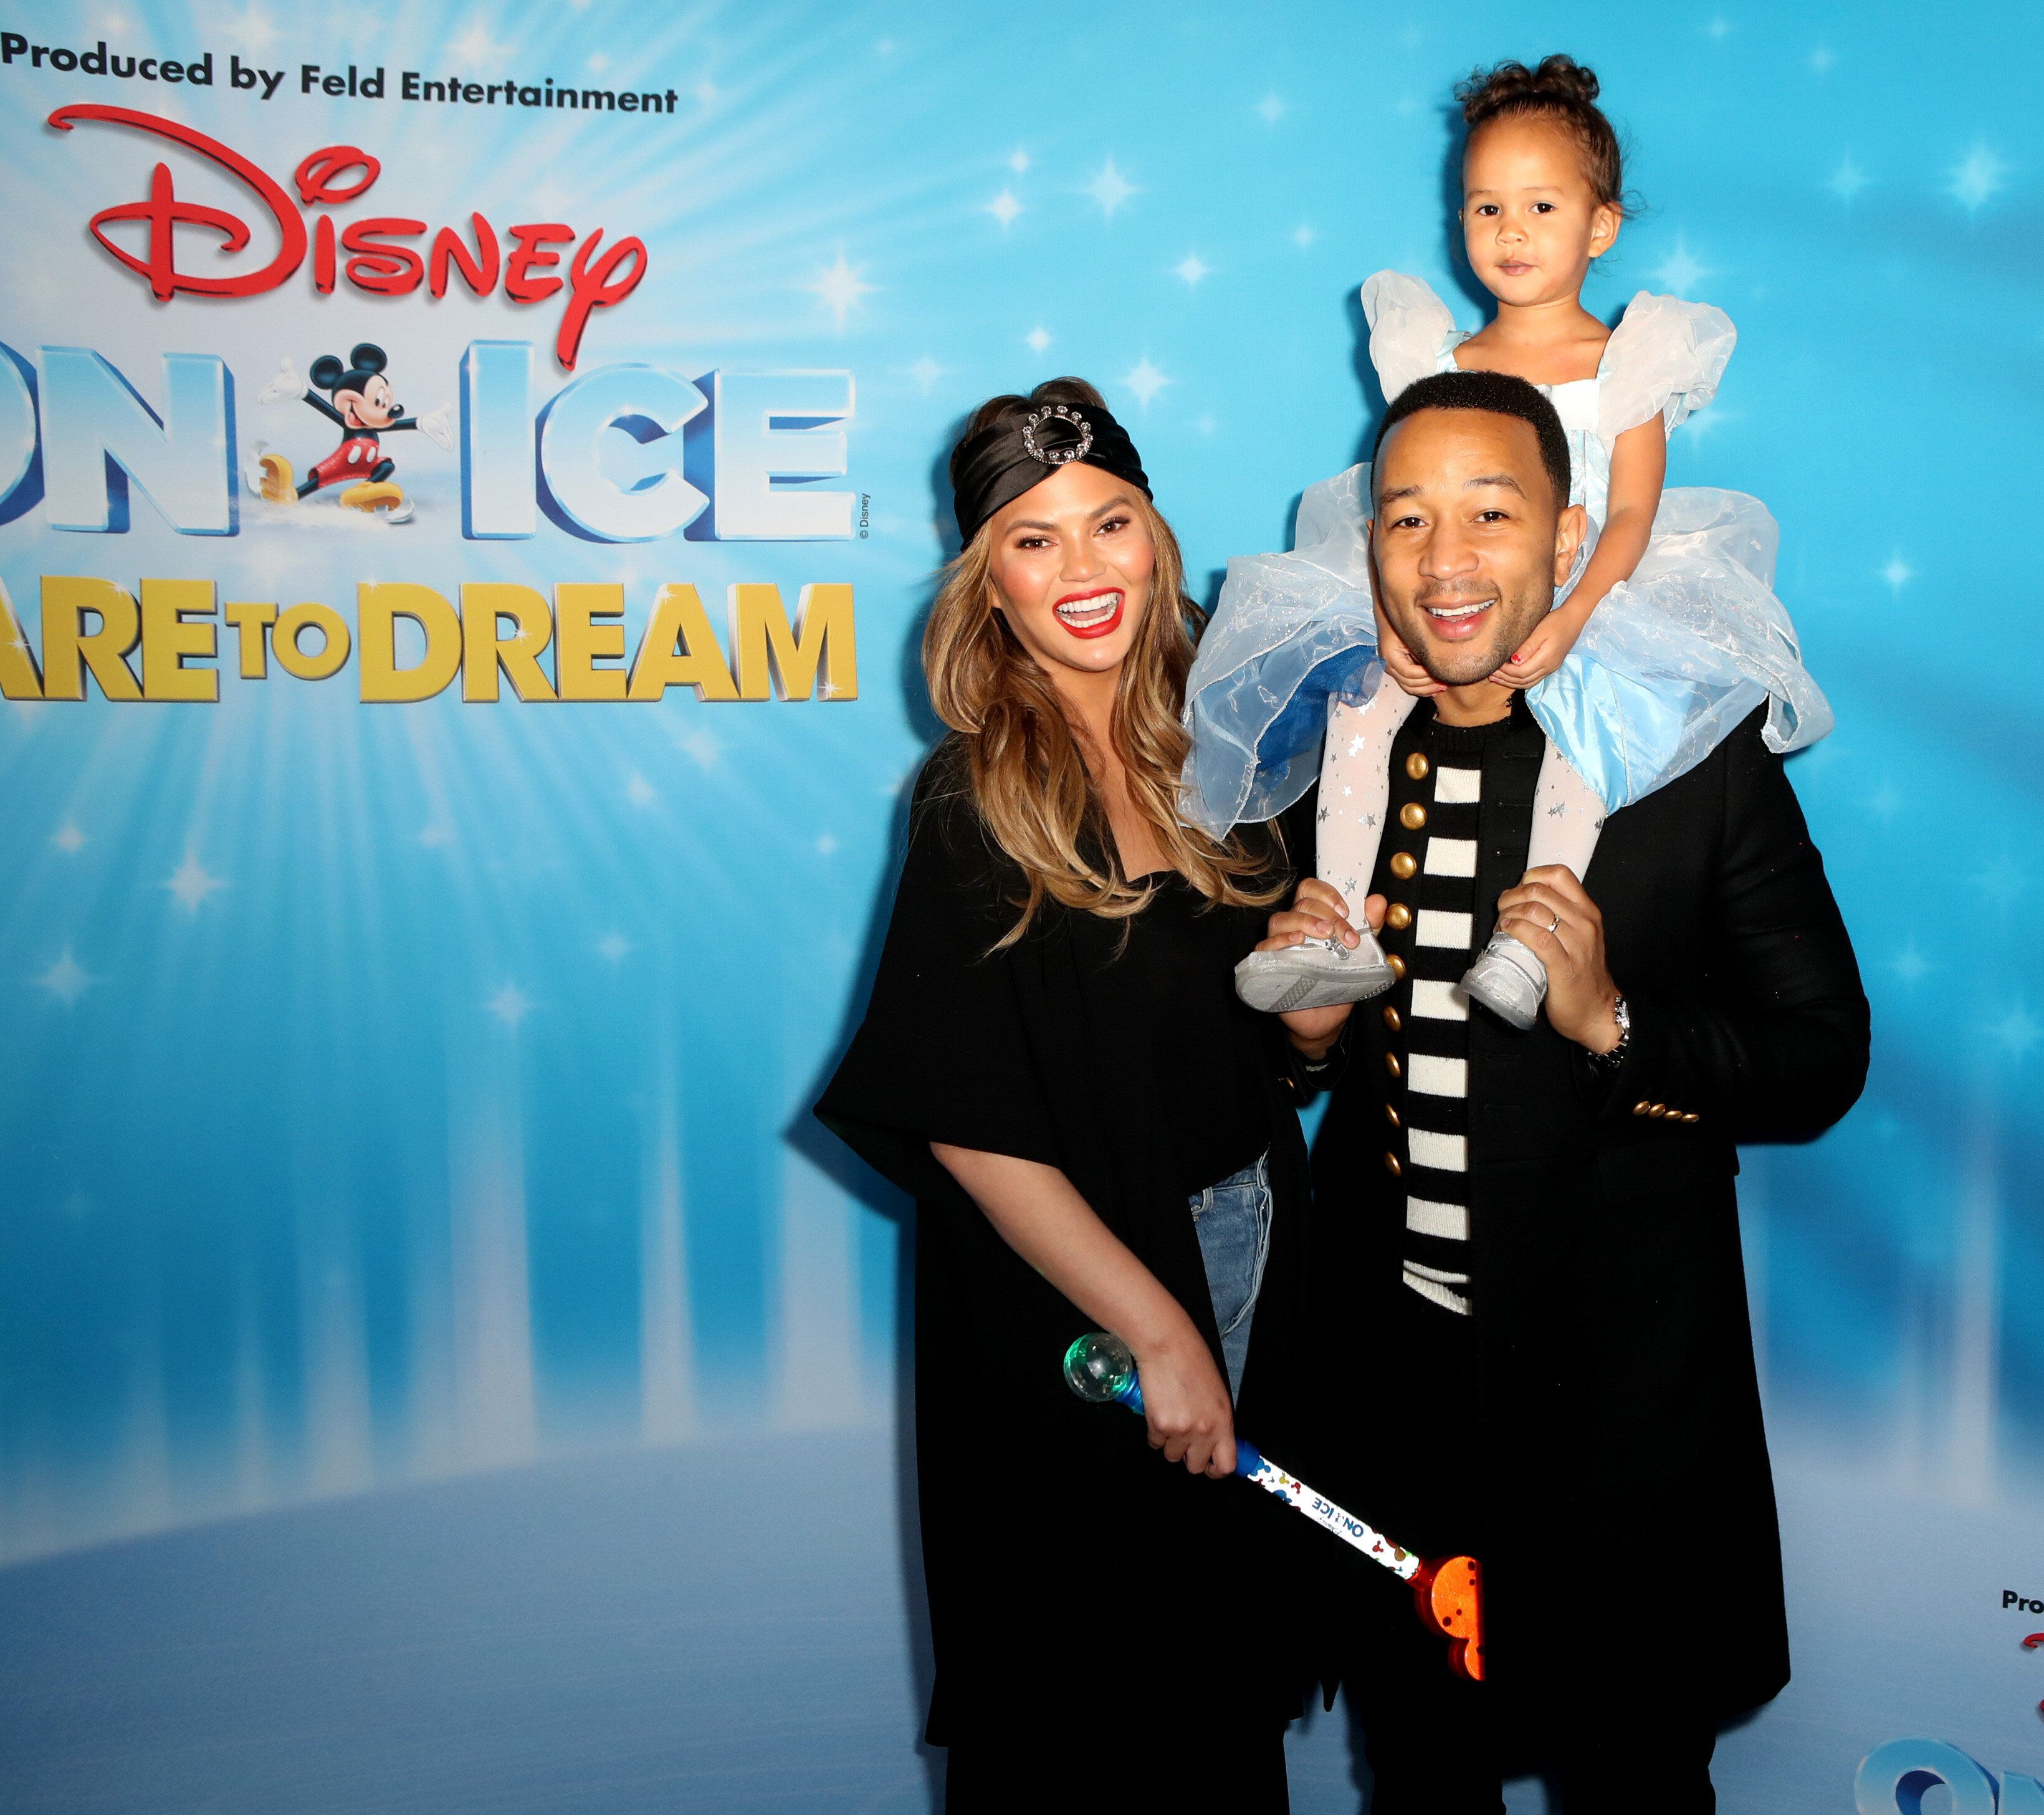 LOS ANGELES, CALIFORNIA - DECEMBER 14: Chrissy Teigen, John Legend and daughter Luna attend  Disney On Ice Presents Dare to Dream Celebrity Skating Party at Staples Center on December 14, 2018 in Los Angeles, California. (Photo by Ari Perilstein/Getty Images for Feld Entertainment, Inc.)